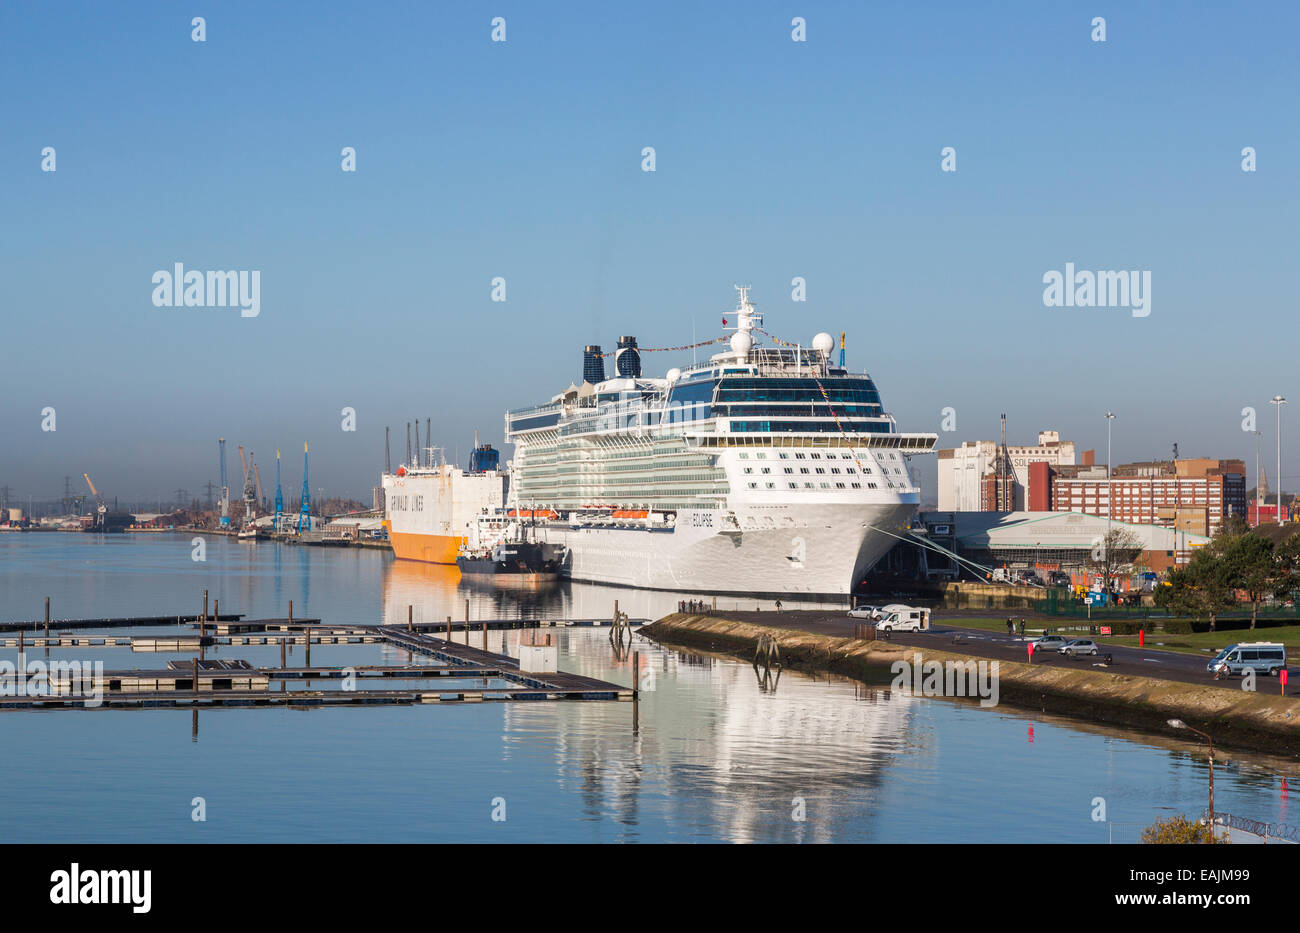 Cruise liner 'Celebrity Eclipse' moored at Southampton Docks on the Solent, Hampshire, UK - Stock Image